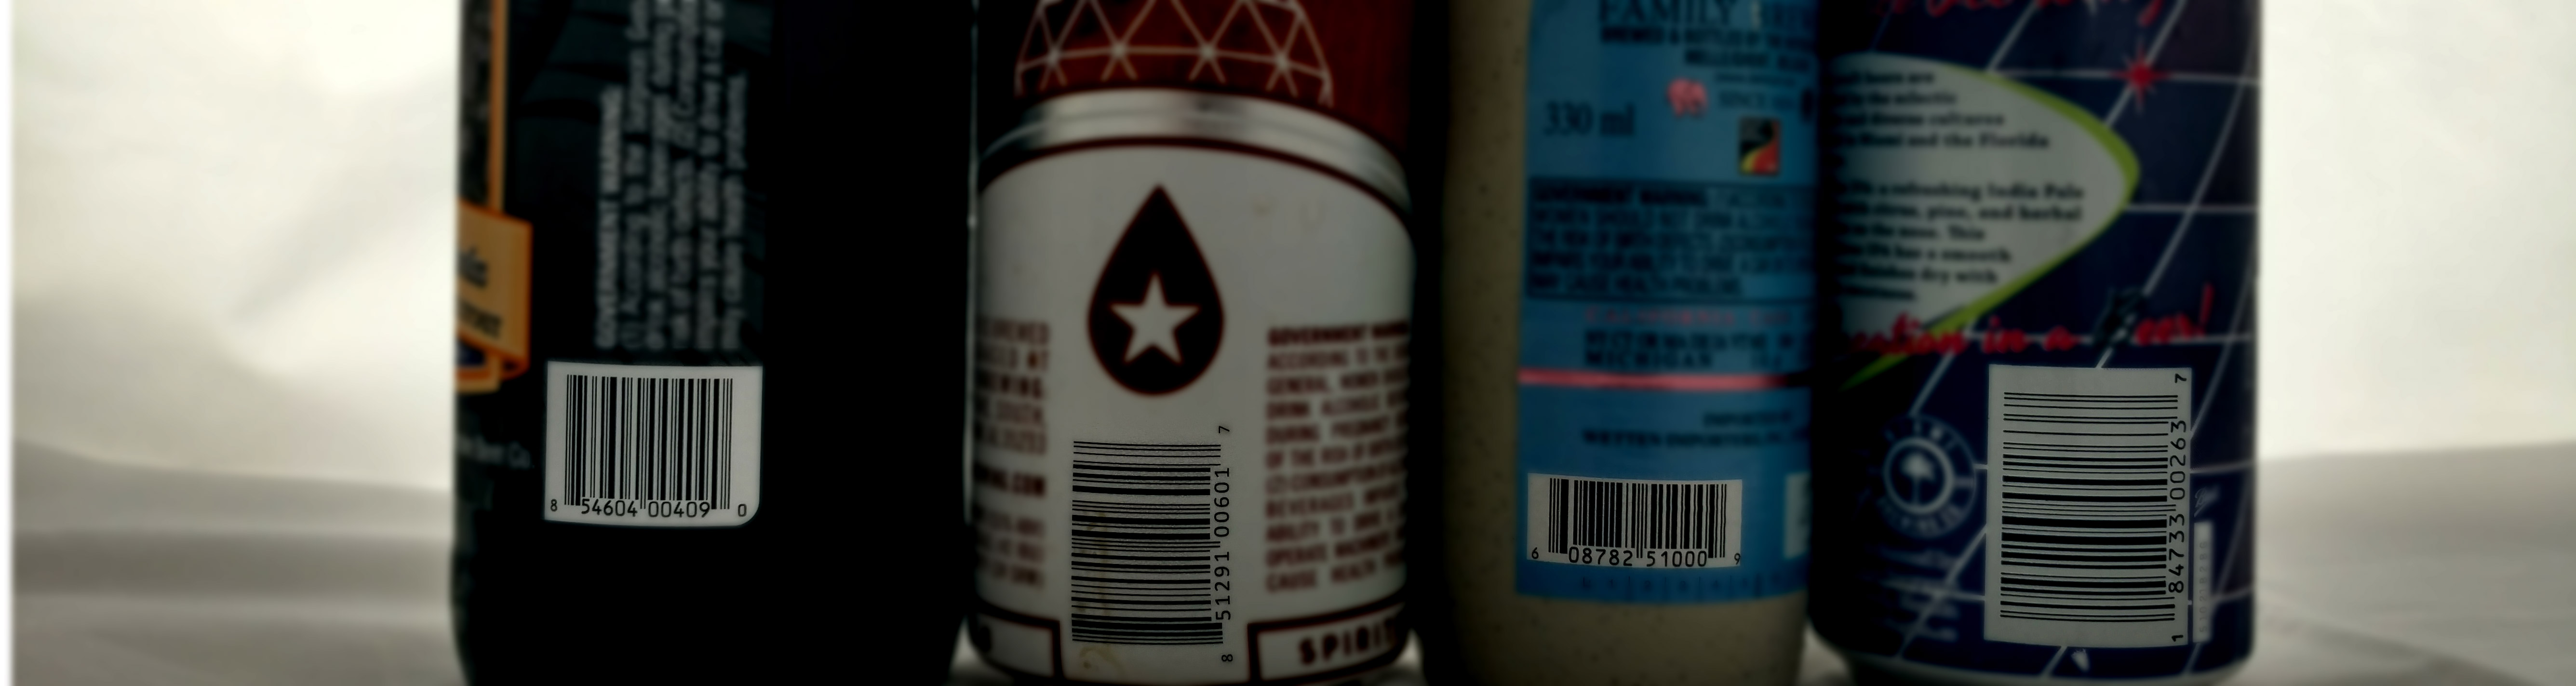 Some UPC labels of widely-distributed beers